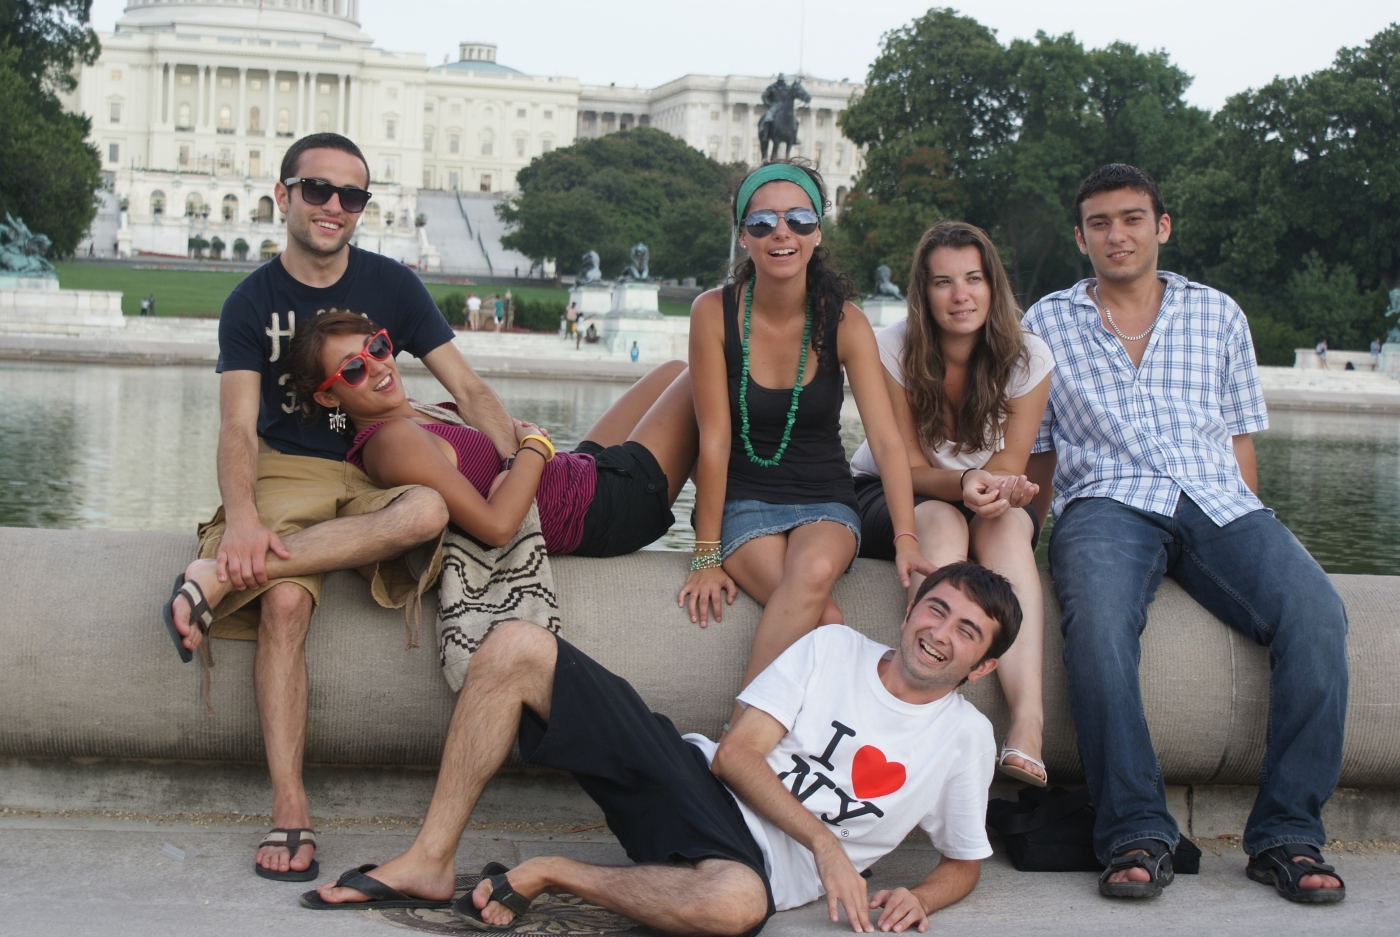 Friends in Washington DC